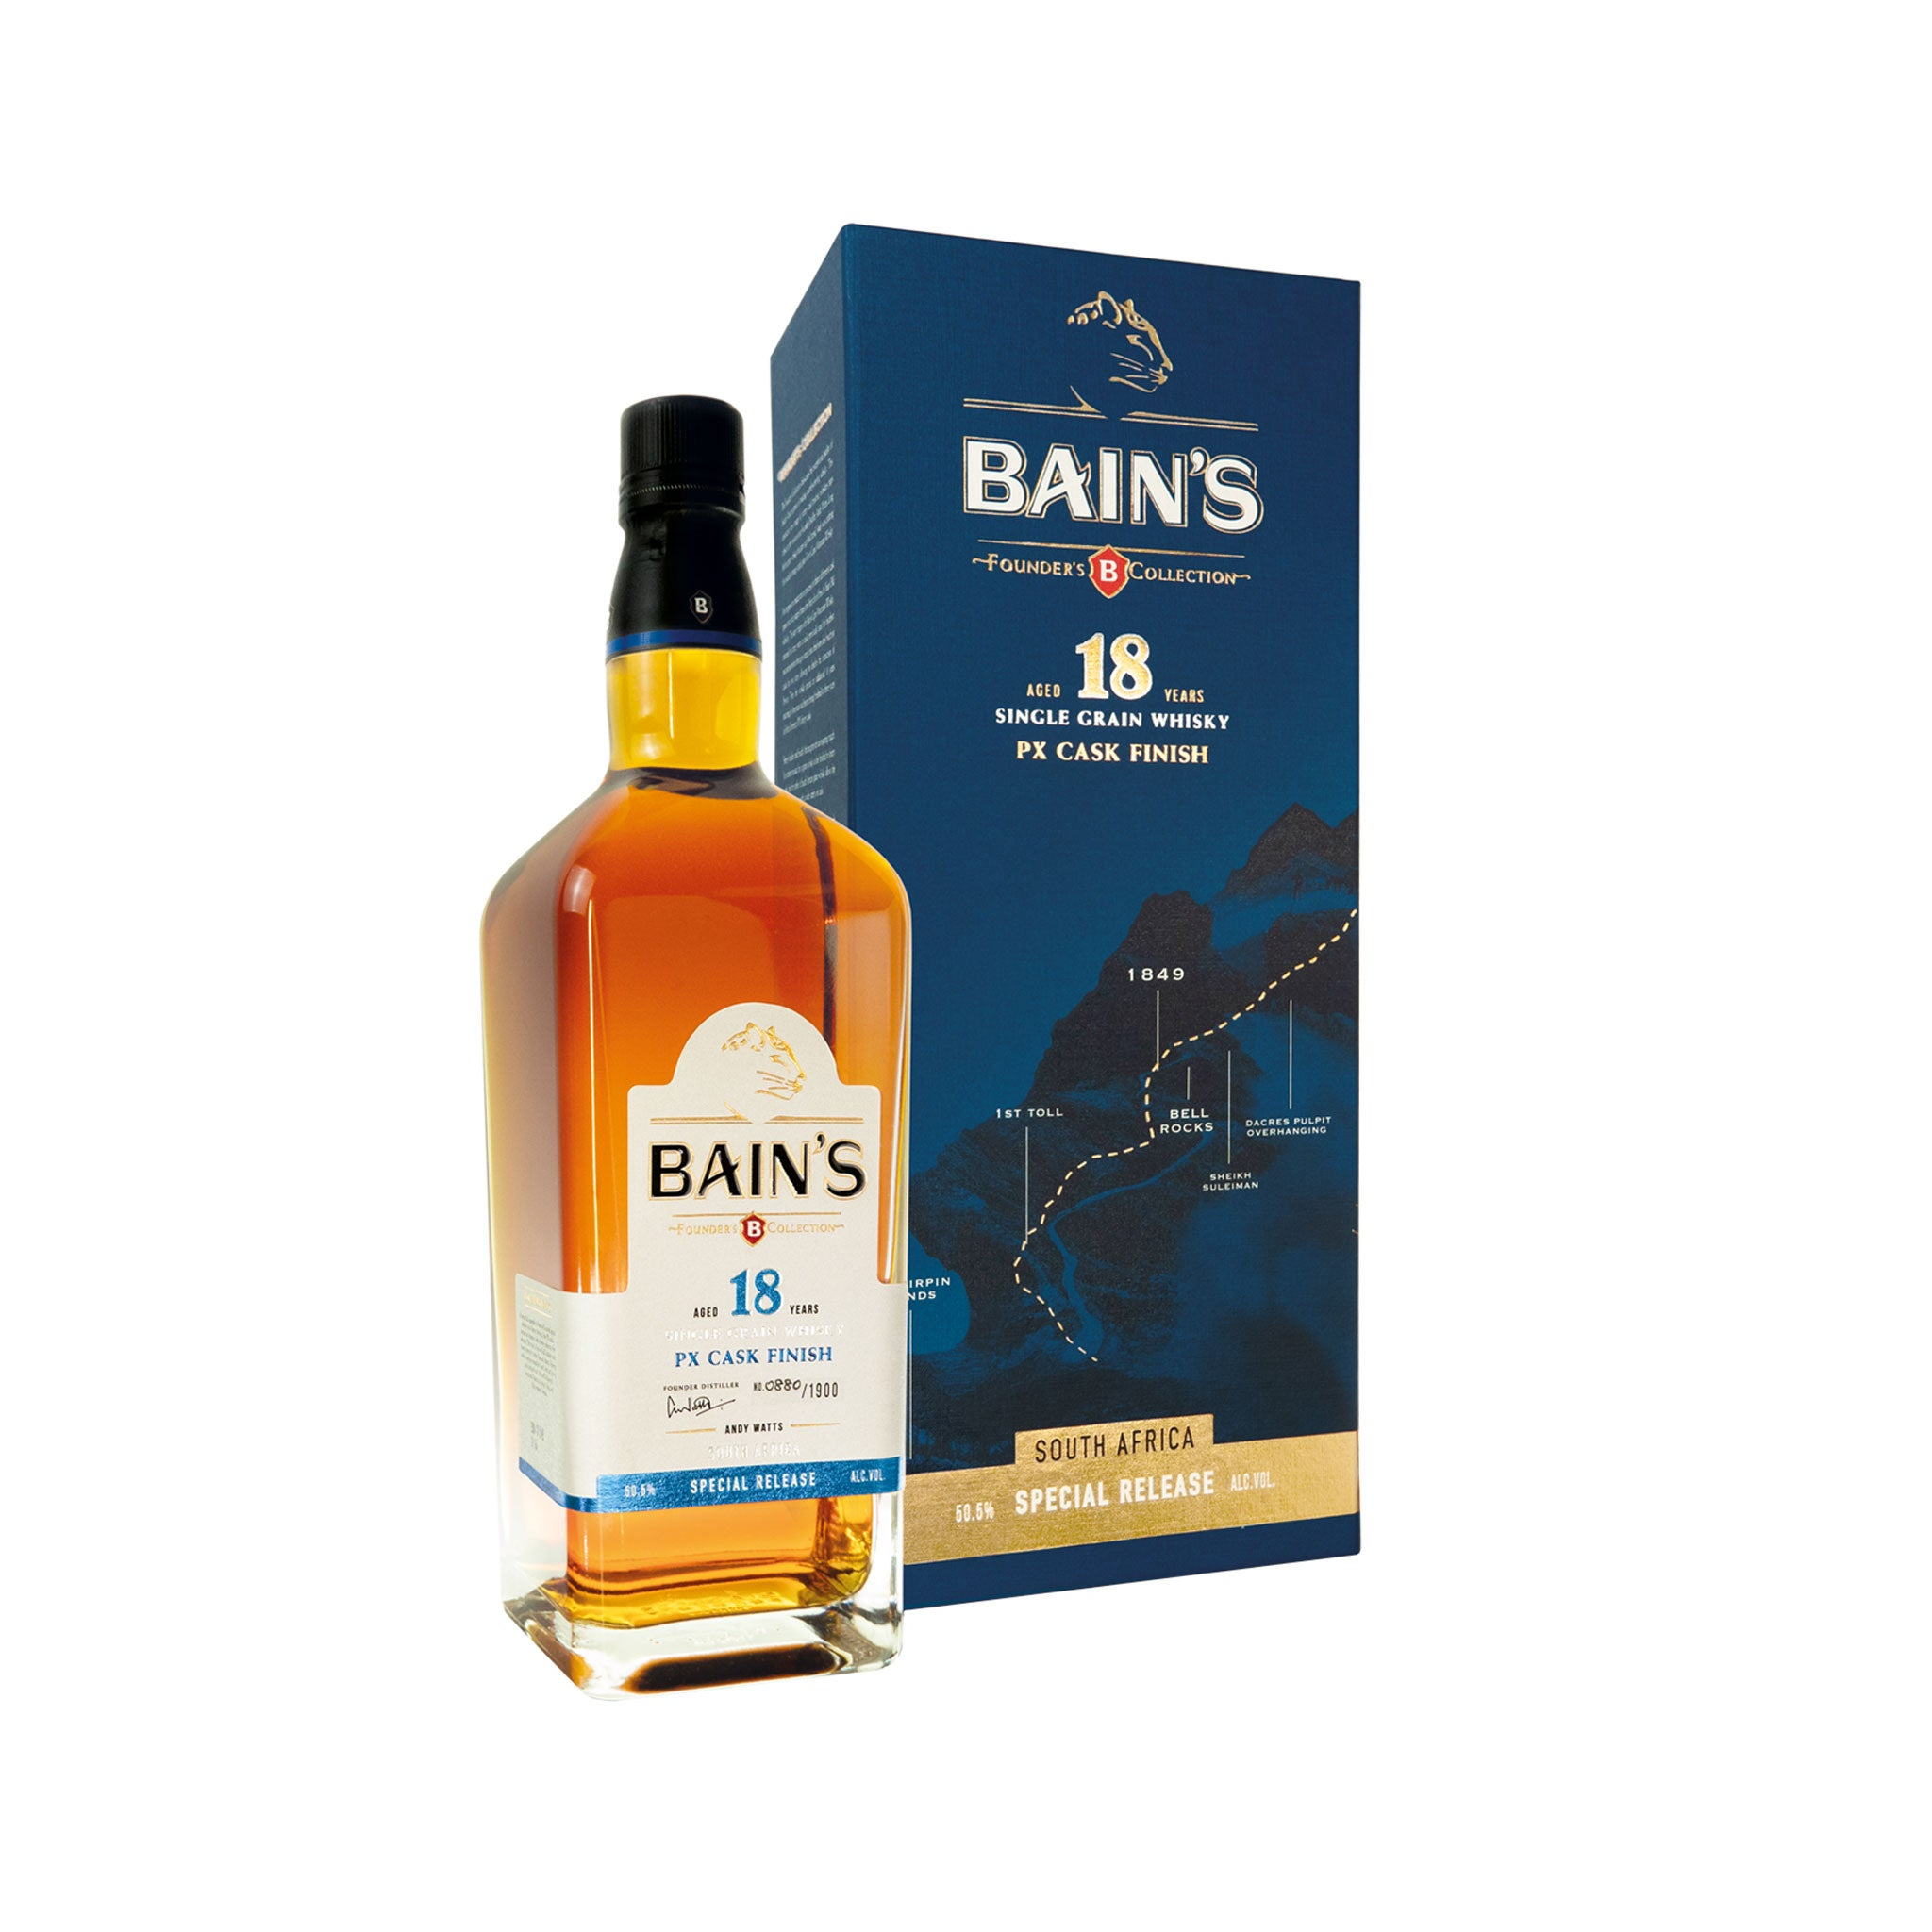 Bain's Founders Collection Whisky 18 Year Old PX Cask Finish